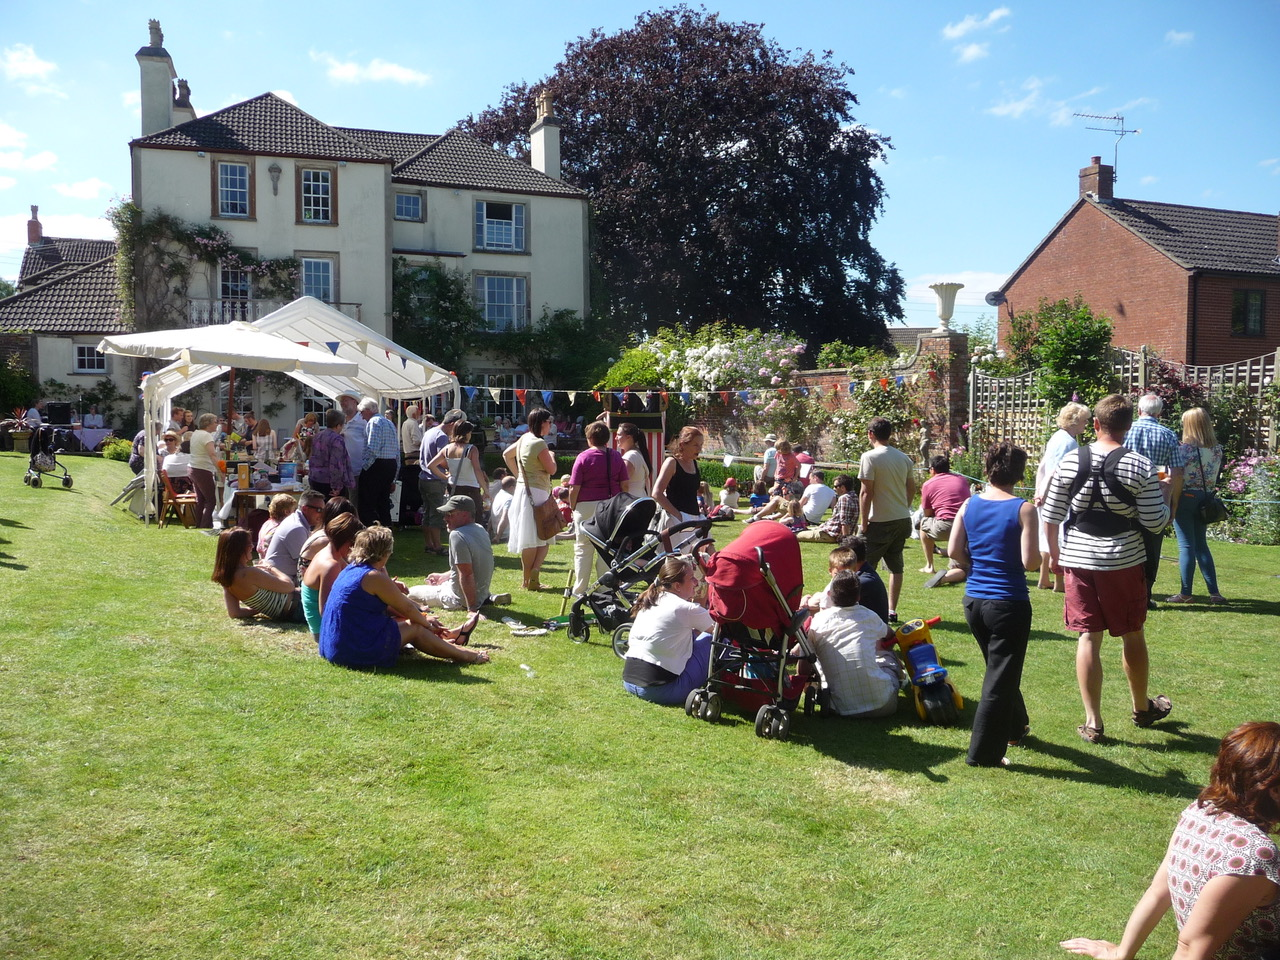 St Mary's Kingswood Annual Village Fete